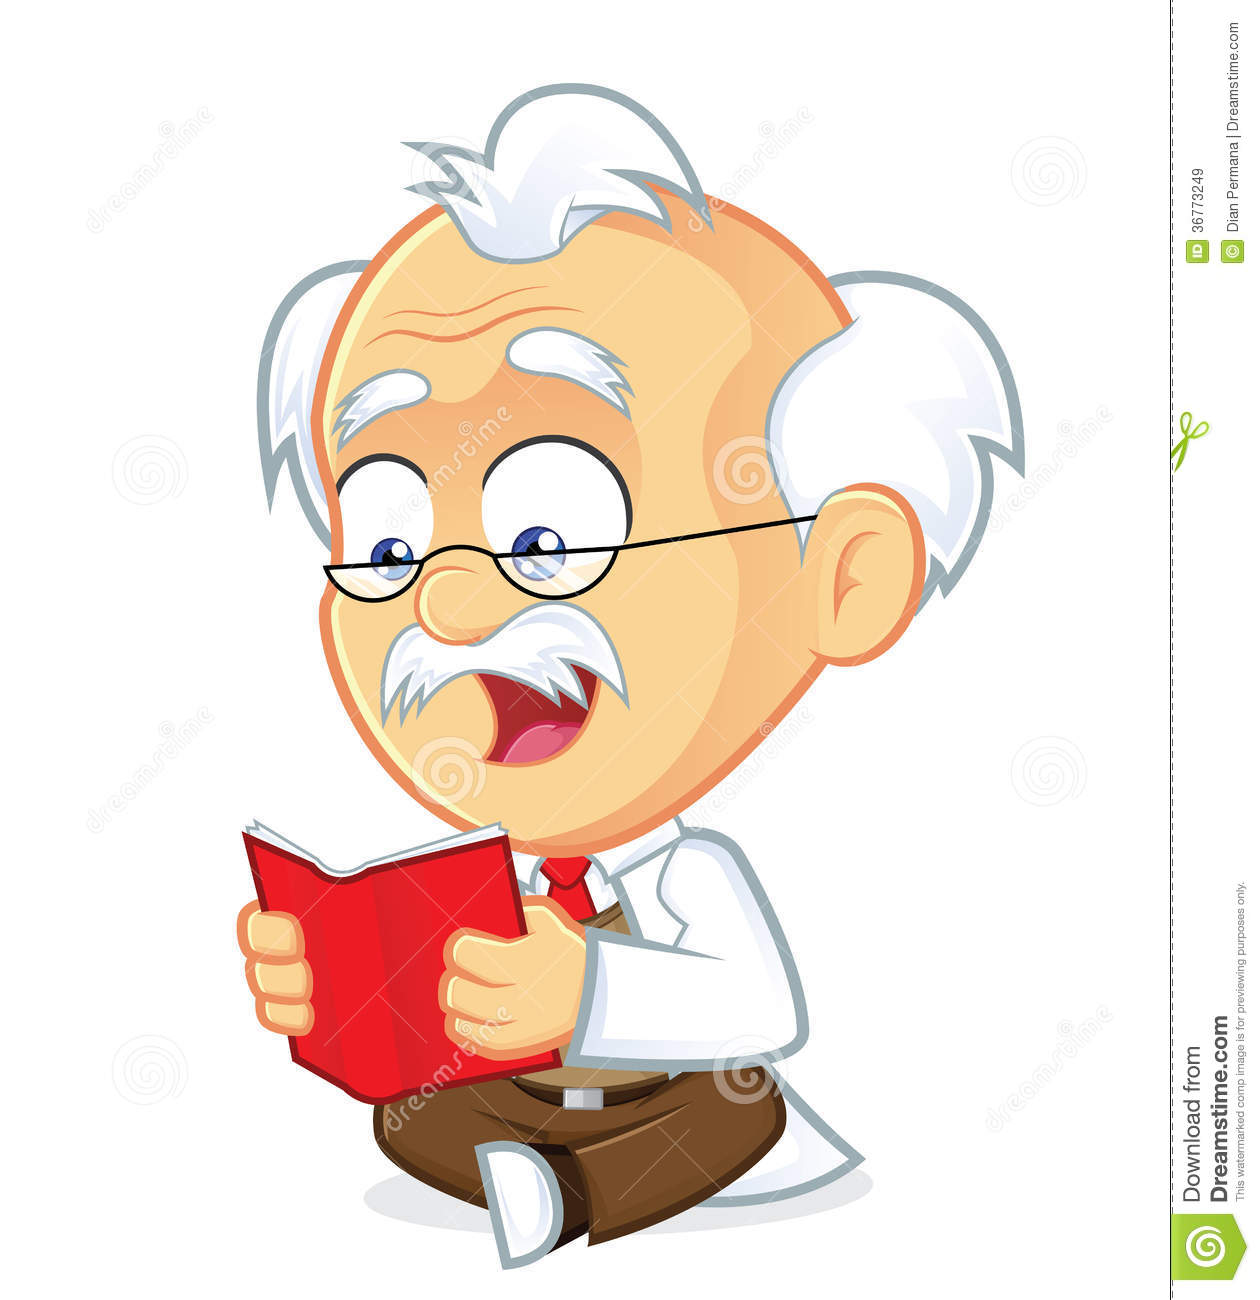 Cartoon Characters Reader : Professor reading a book royalty free stock images image